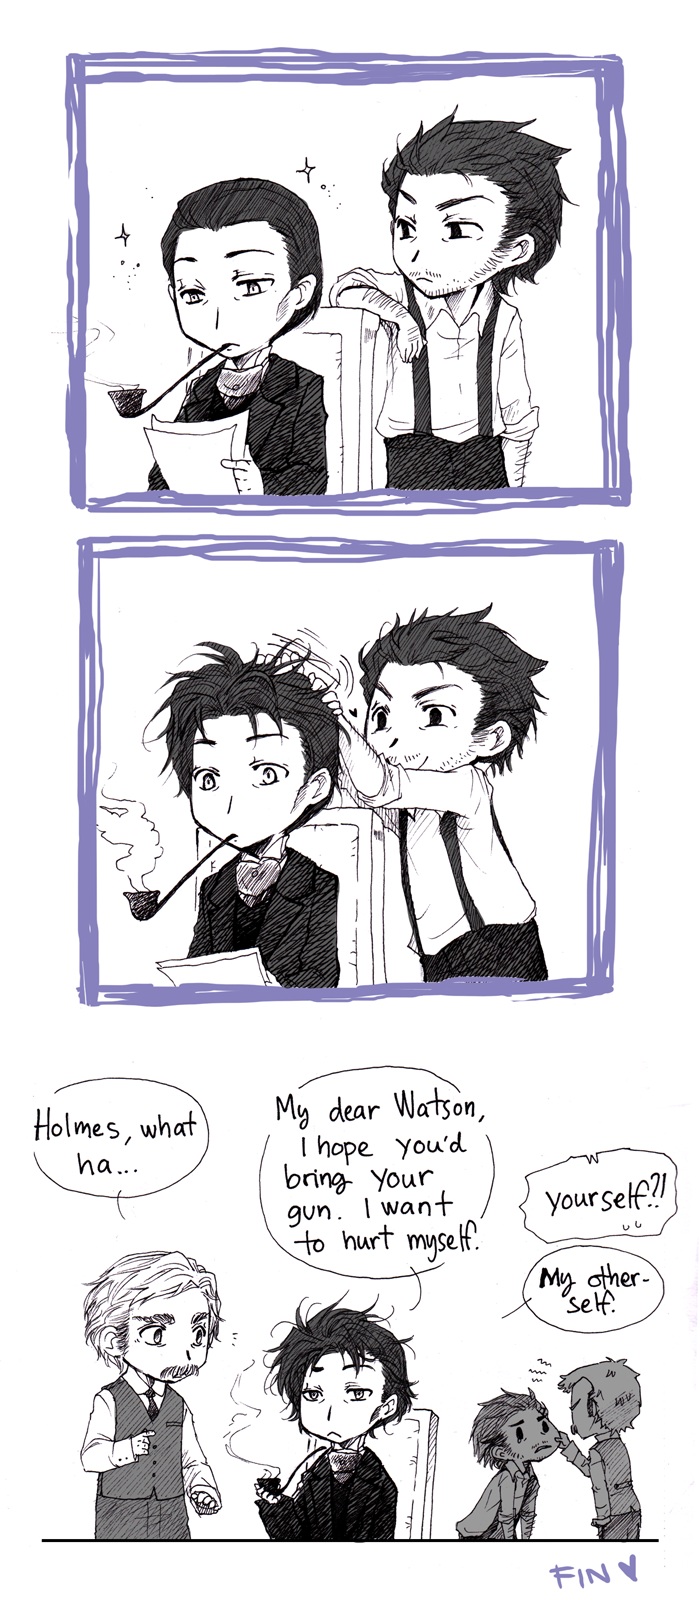 Holmes' bad hair day by Sadyna